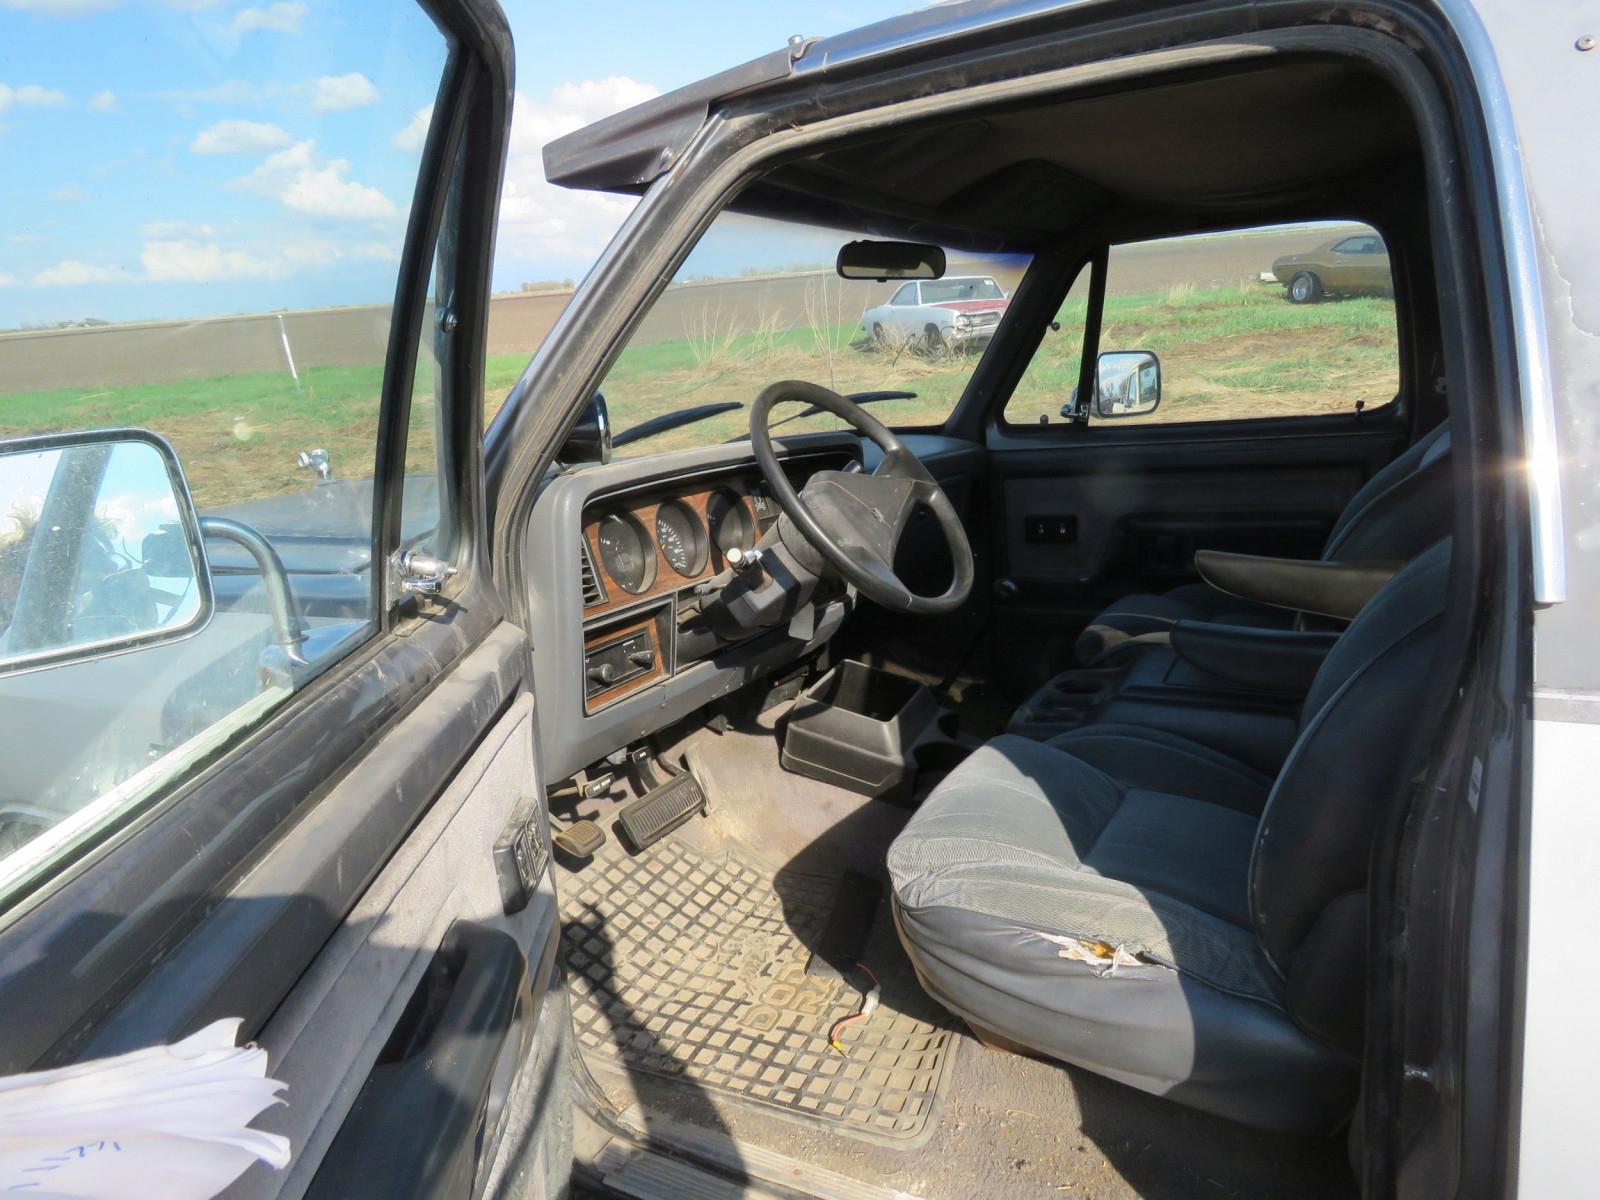 1990 Dodge Ram Charger Pickup - Image 7